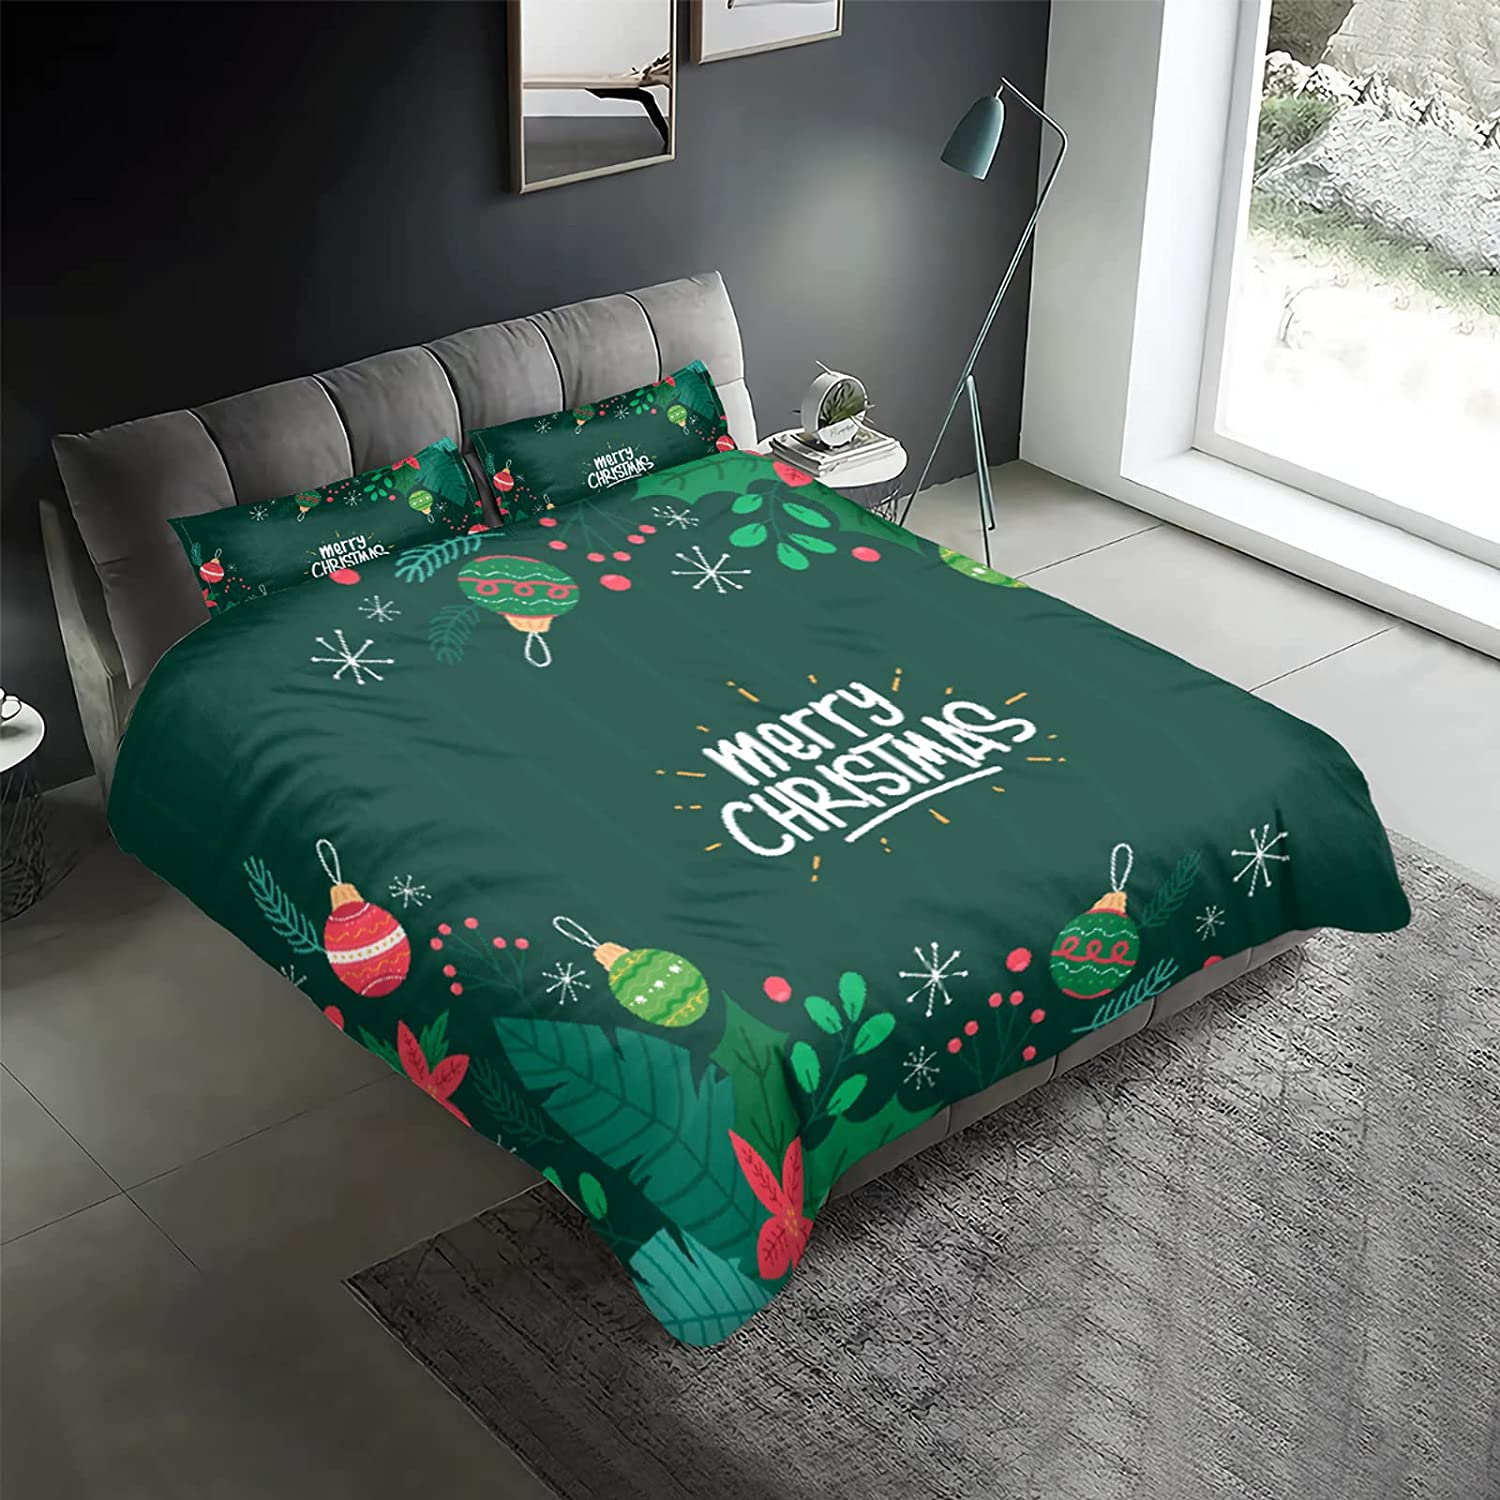 Christmas Green Cute Queen Dealing full price reduction Duvet 3 B Cover Piece New arrival Set